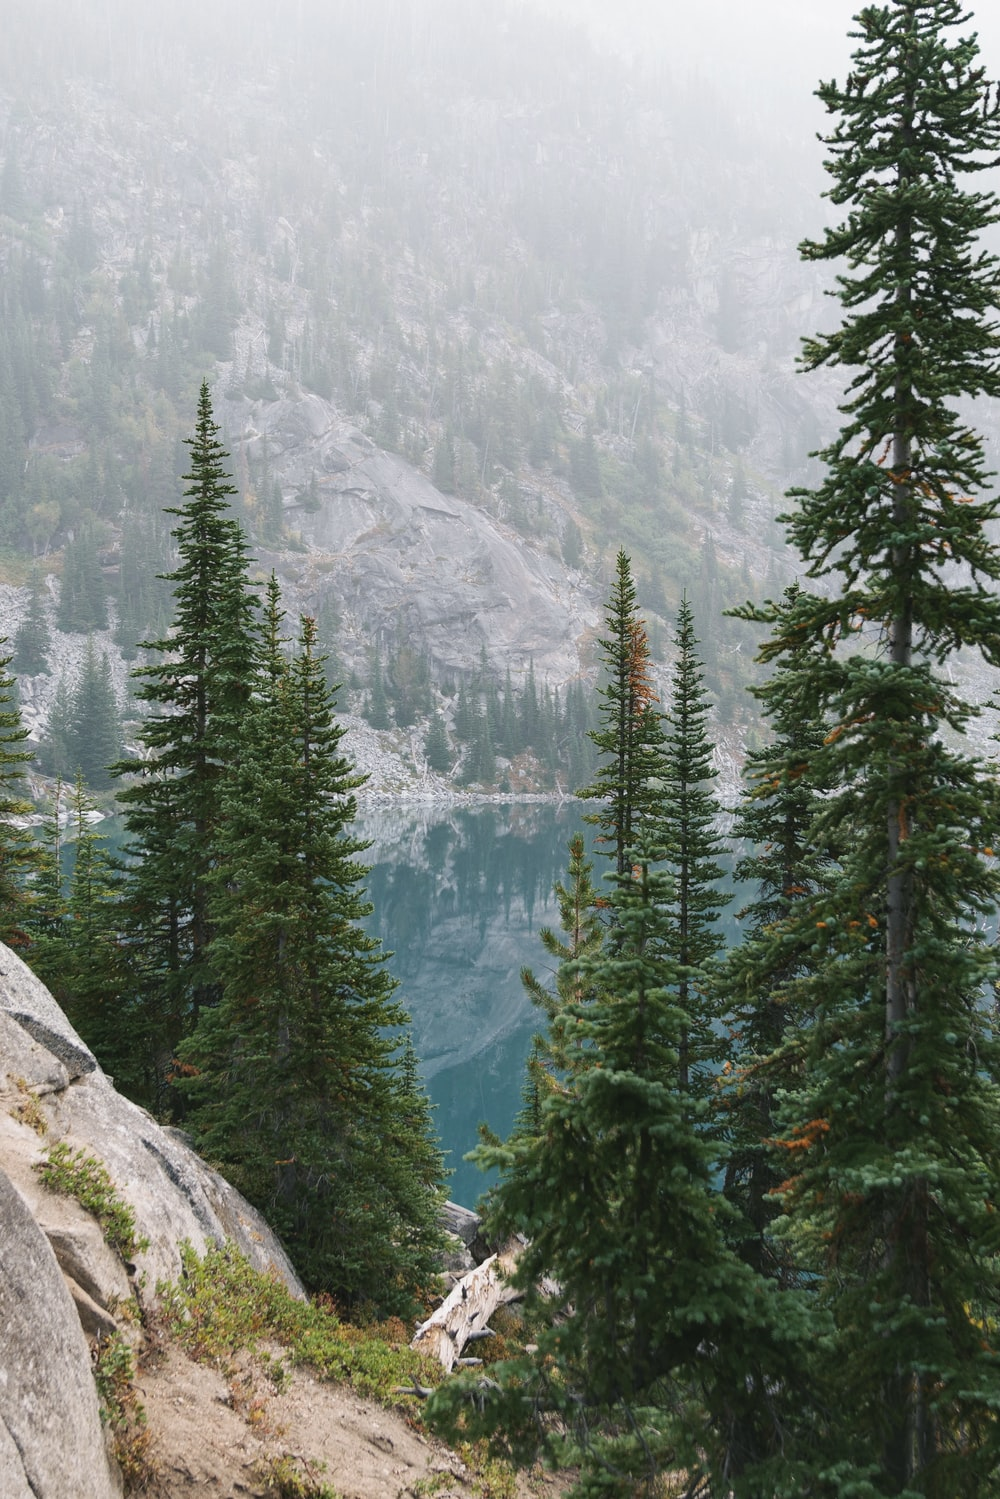 green pine trees on gray rocky mountain during daytime